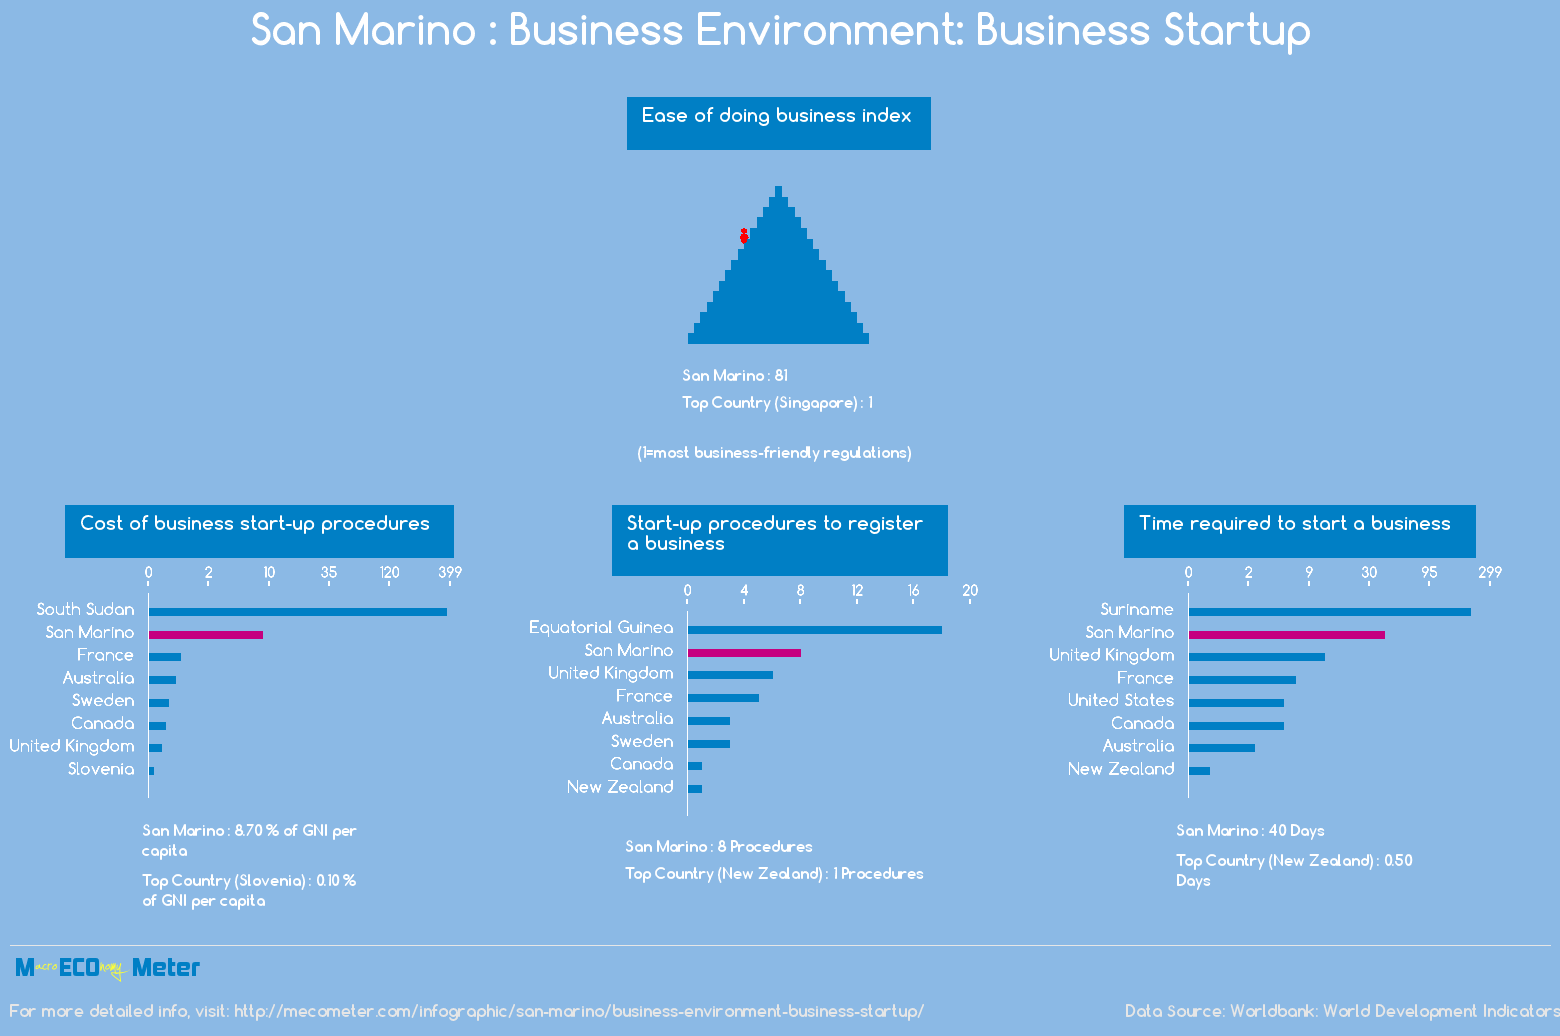 San Marino : Business Environment: Business Startup